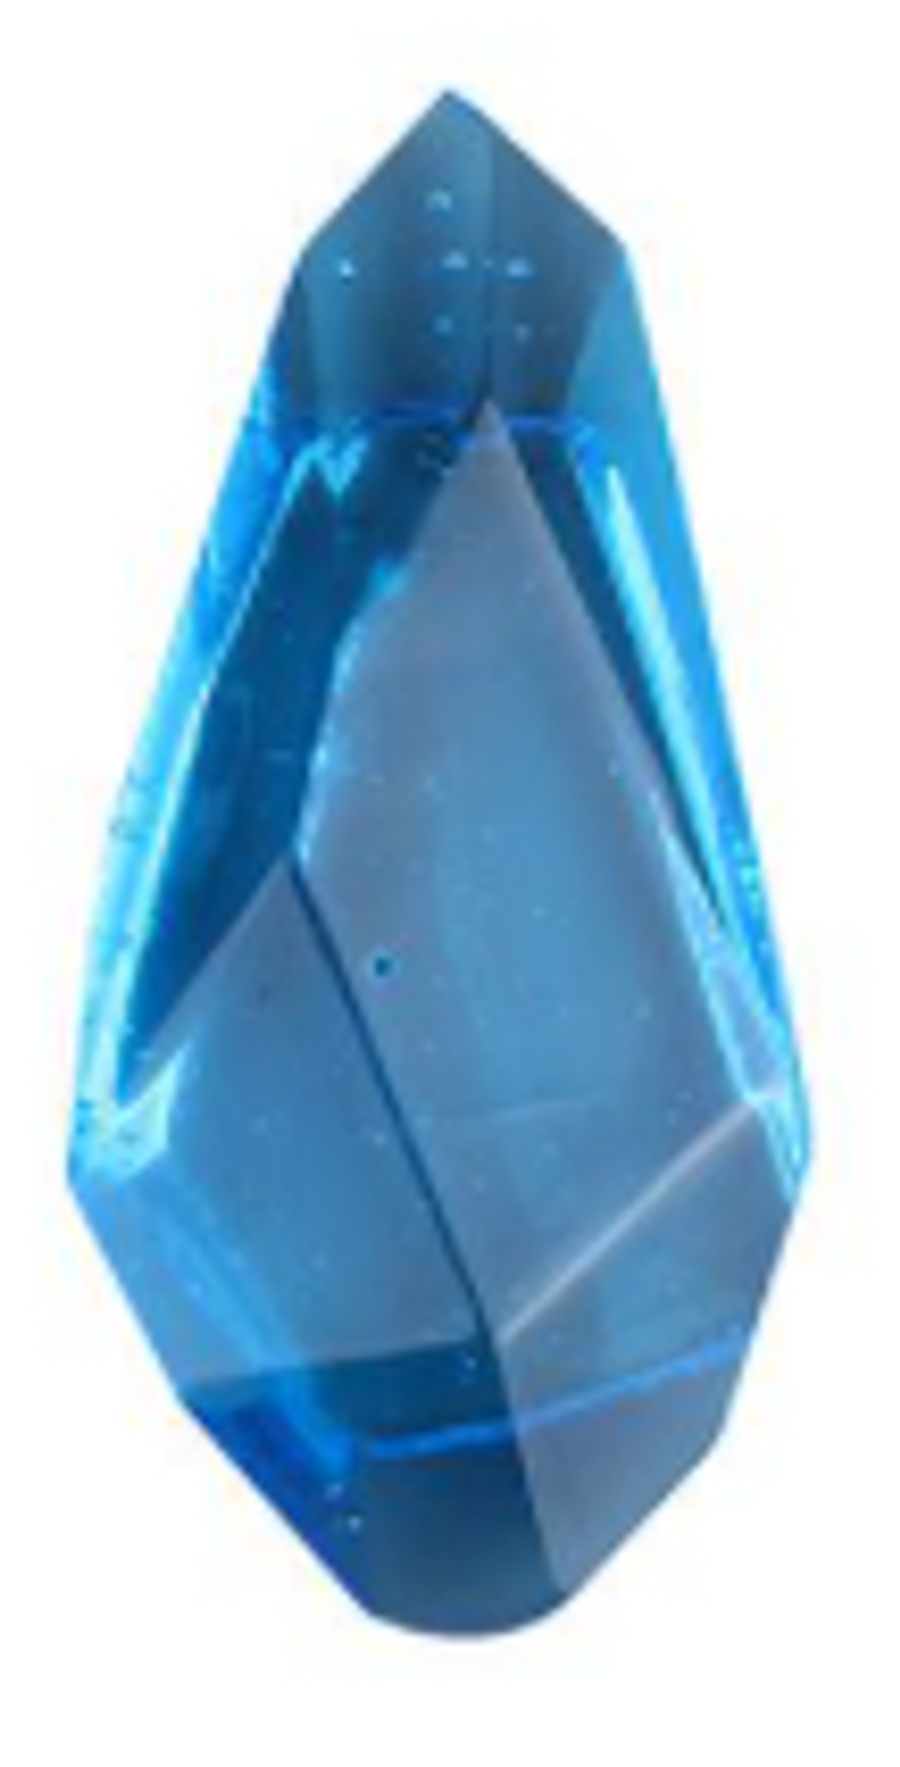 Irregular Faceted Stone example